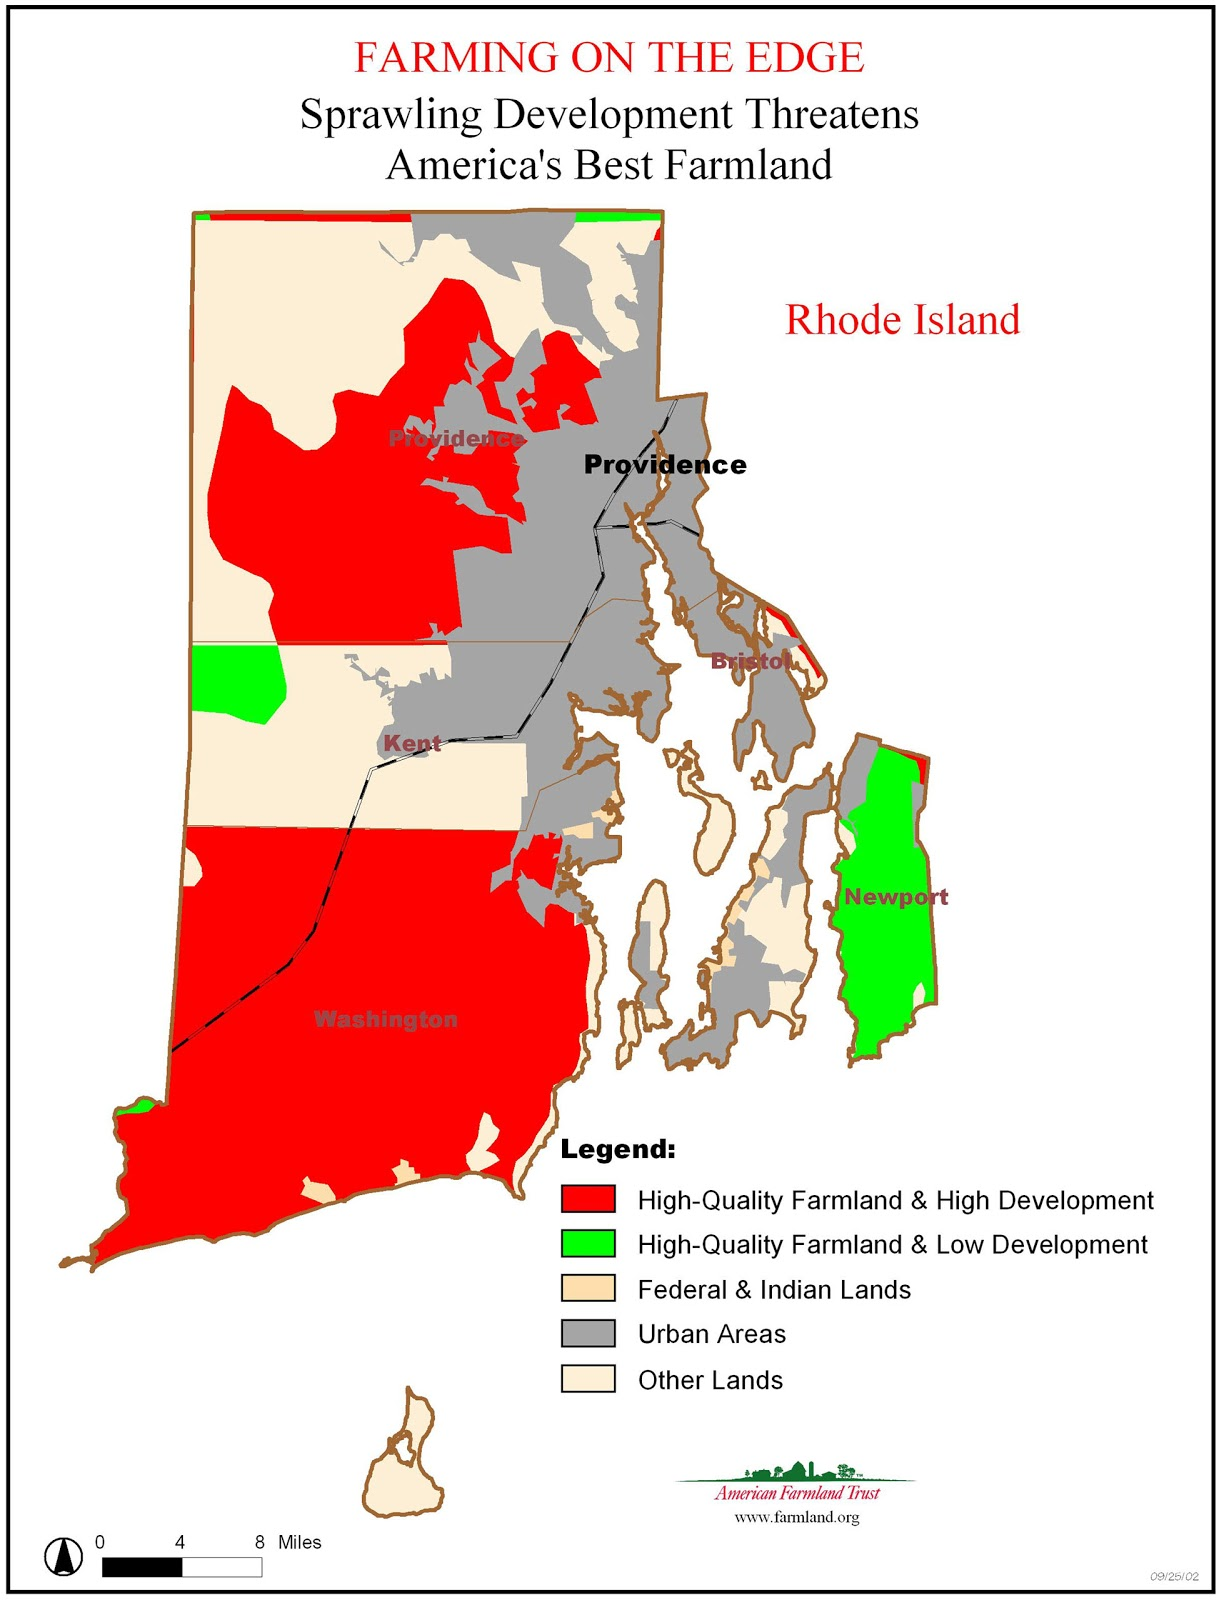 Rhode Island Agricultural Extension Service